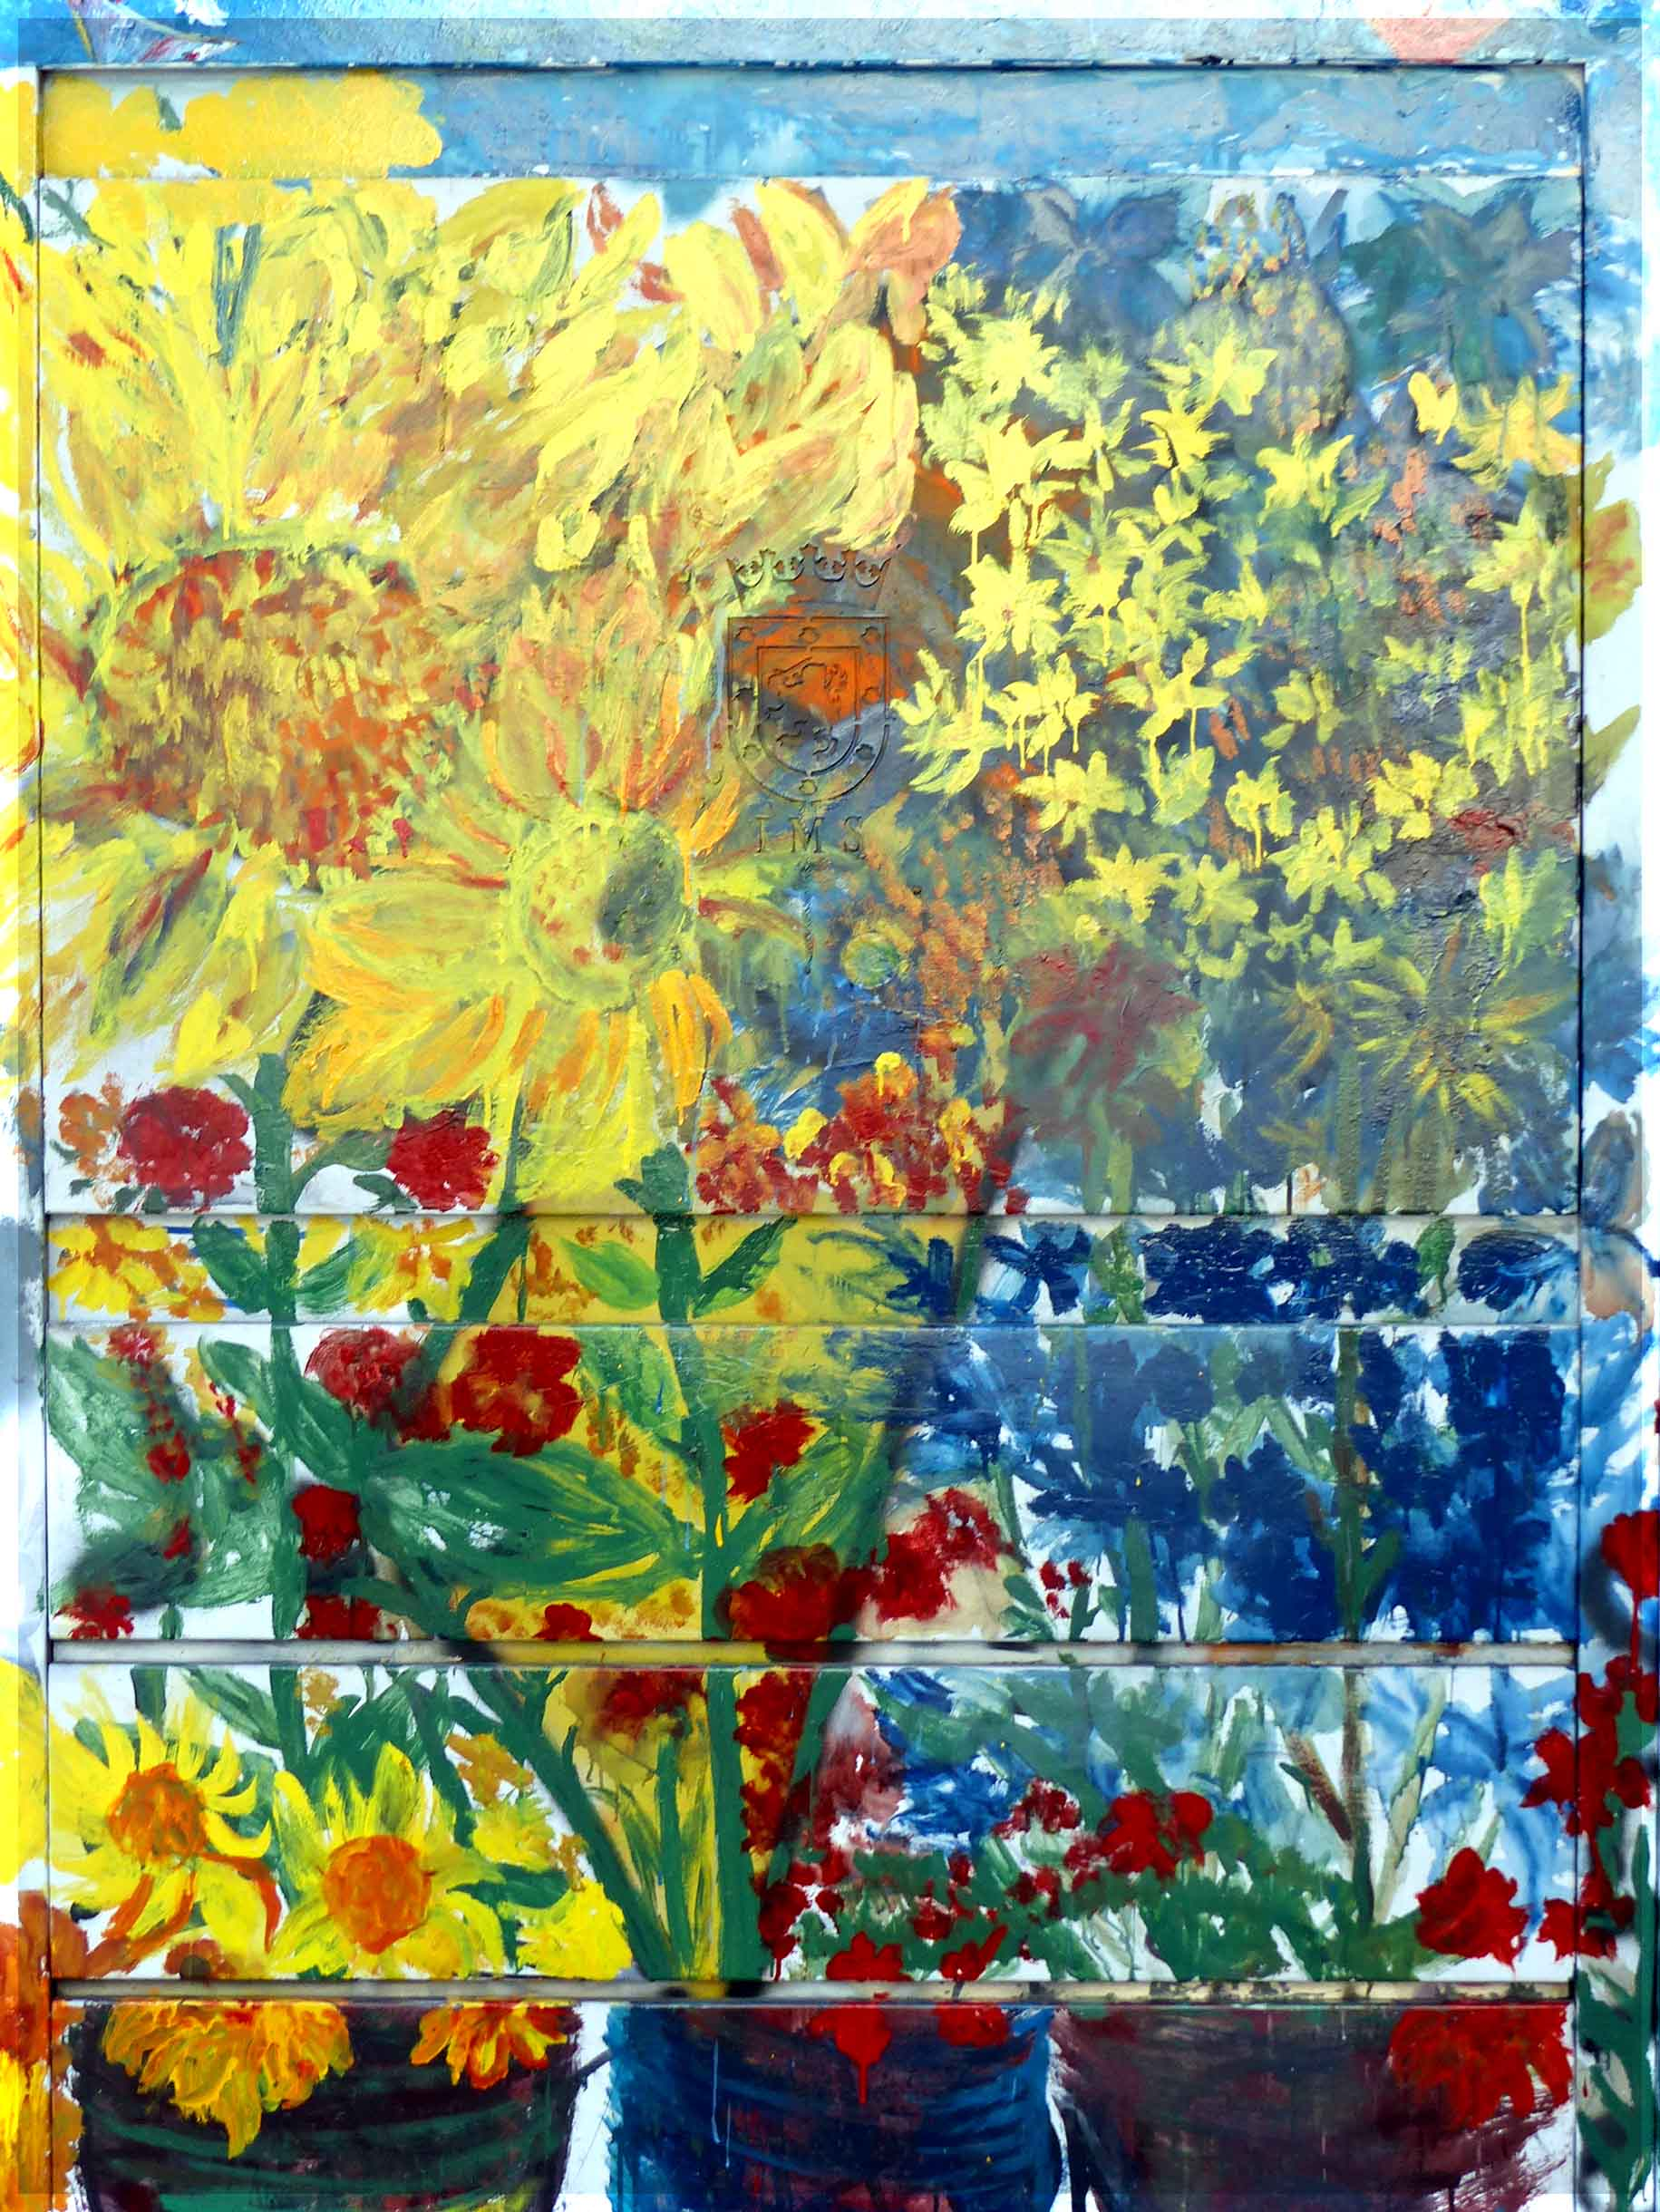 Colourful wall painting of yellow and red flowers